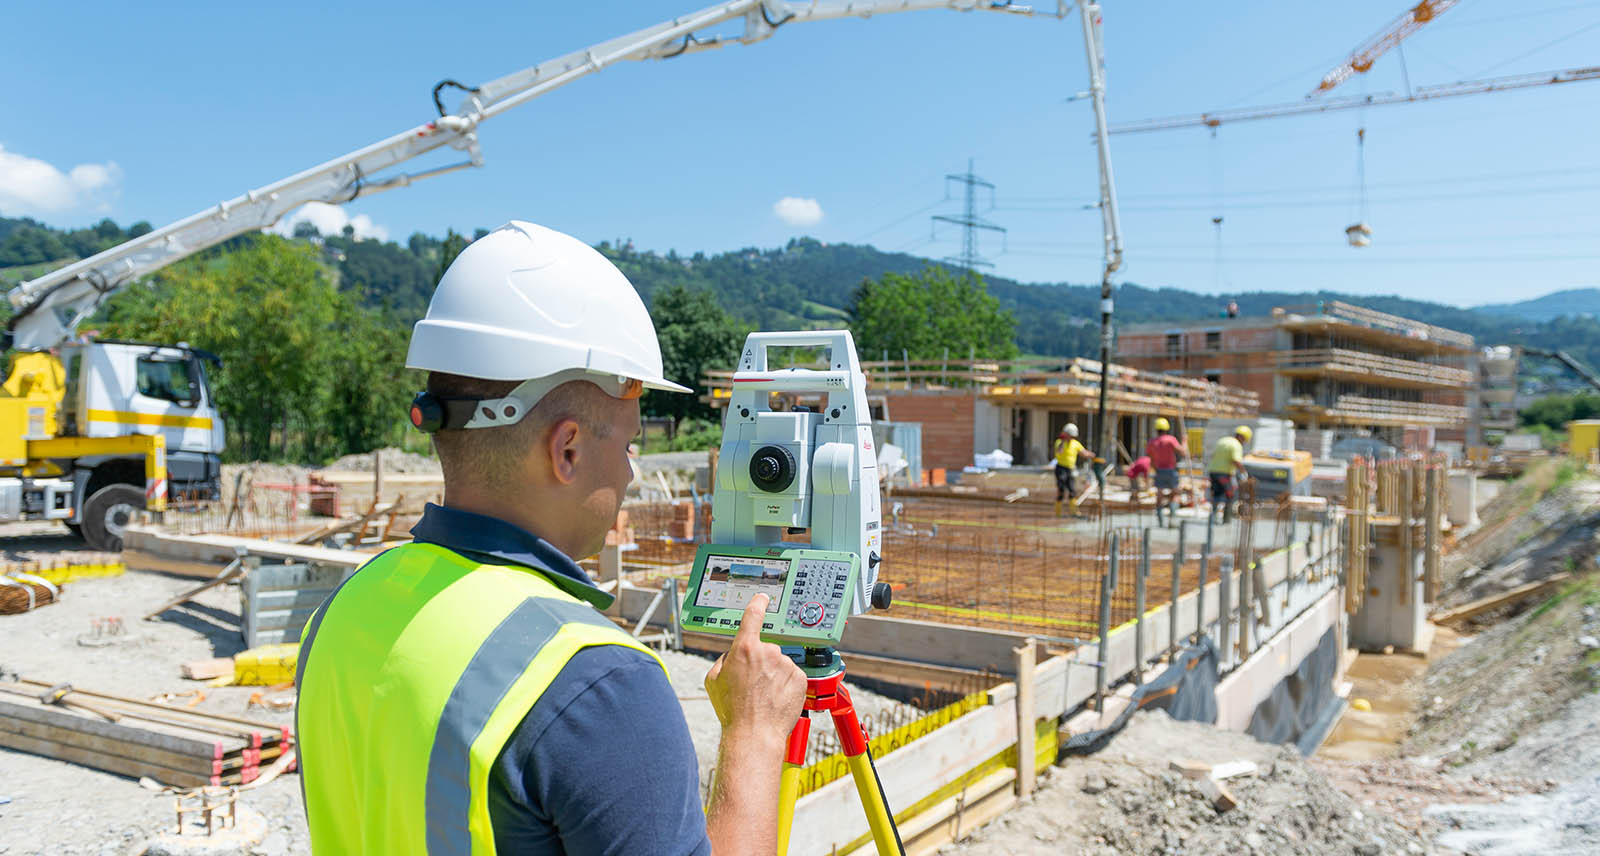 Leica TS16 robotic total station used on a building construction site